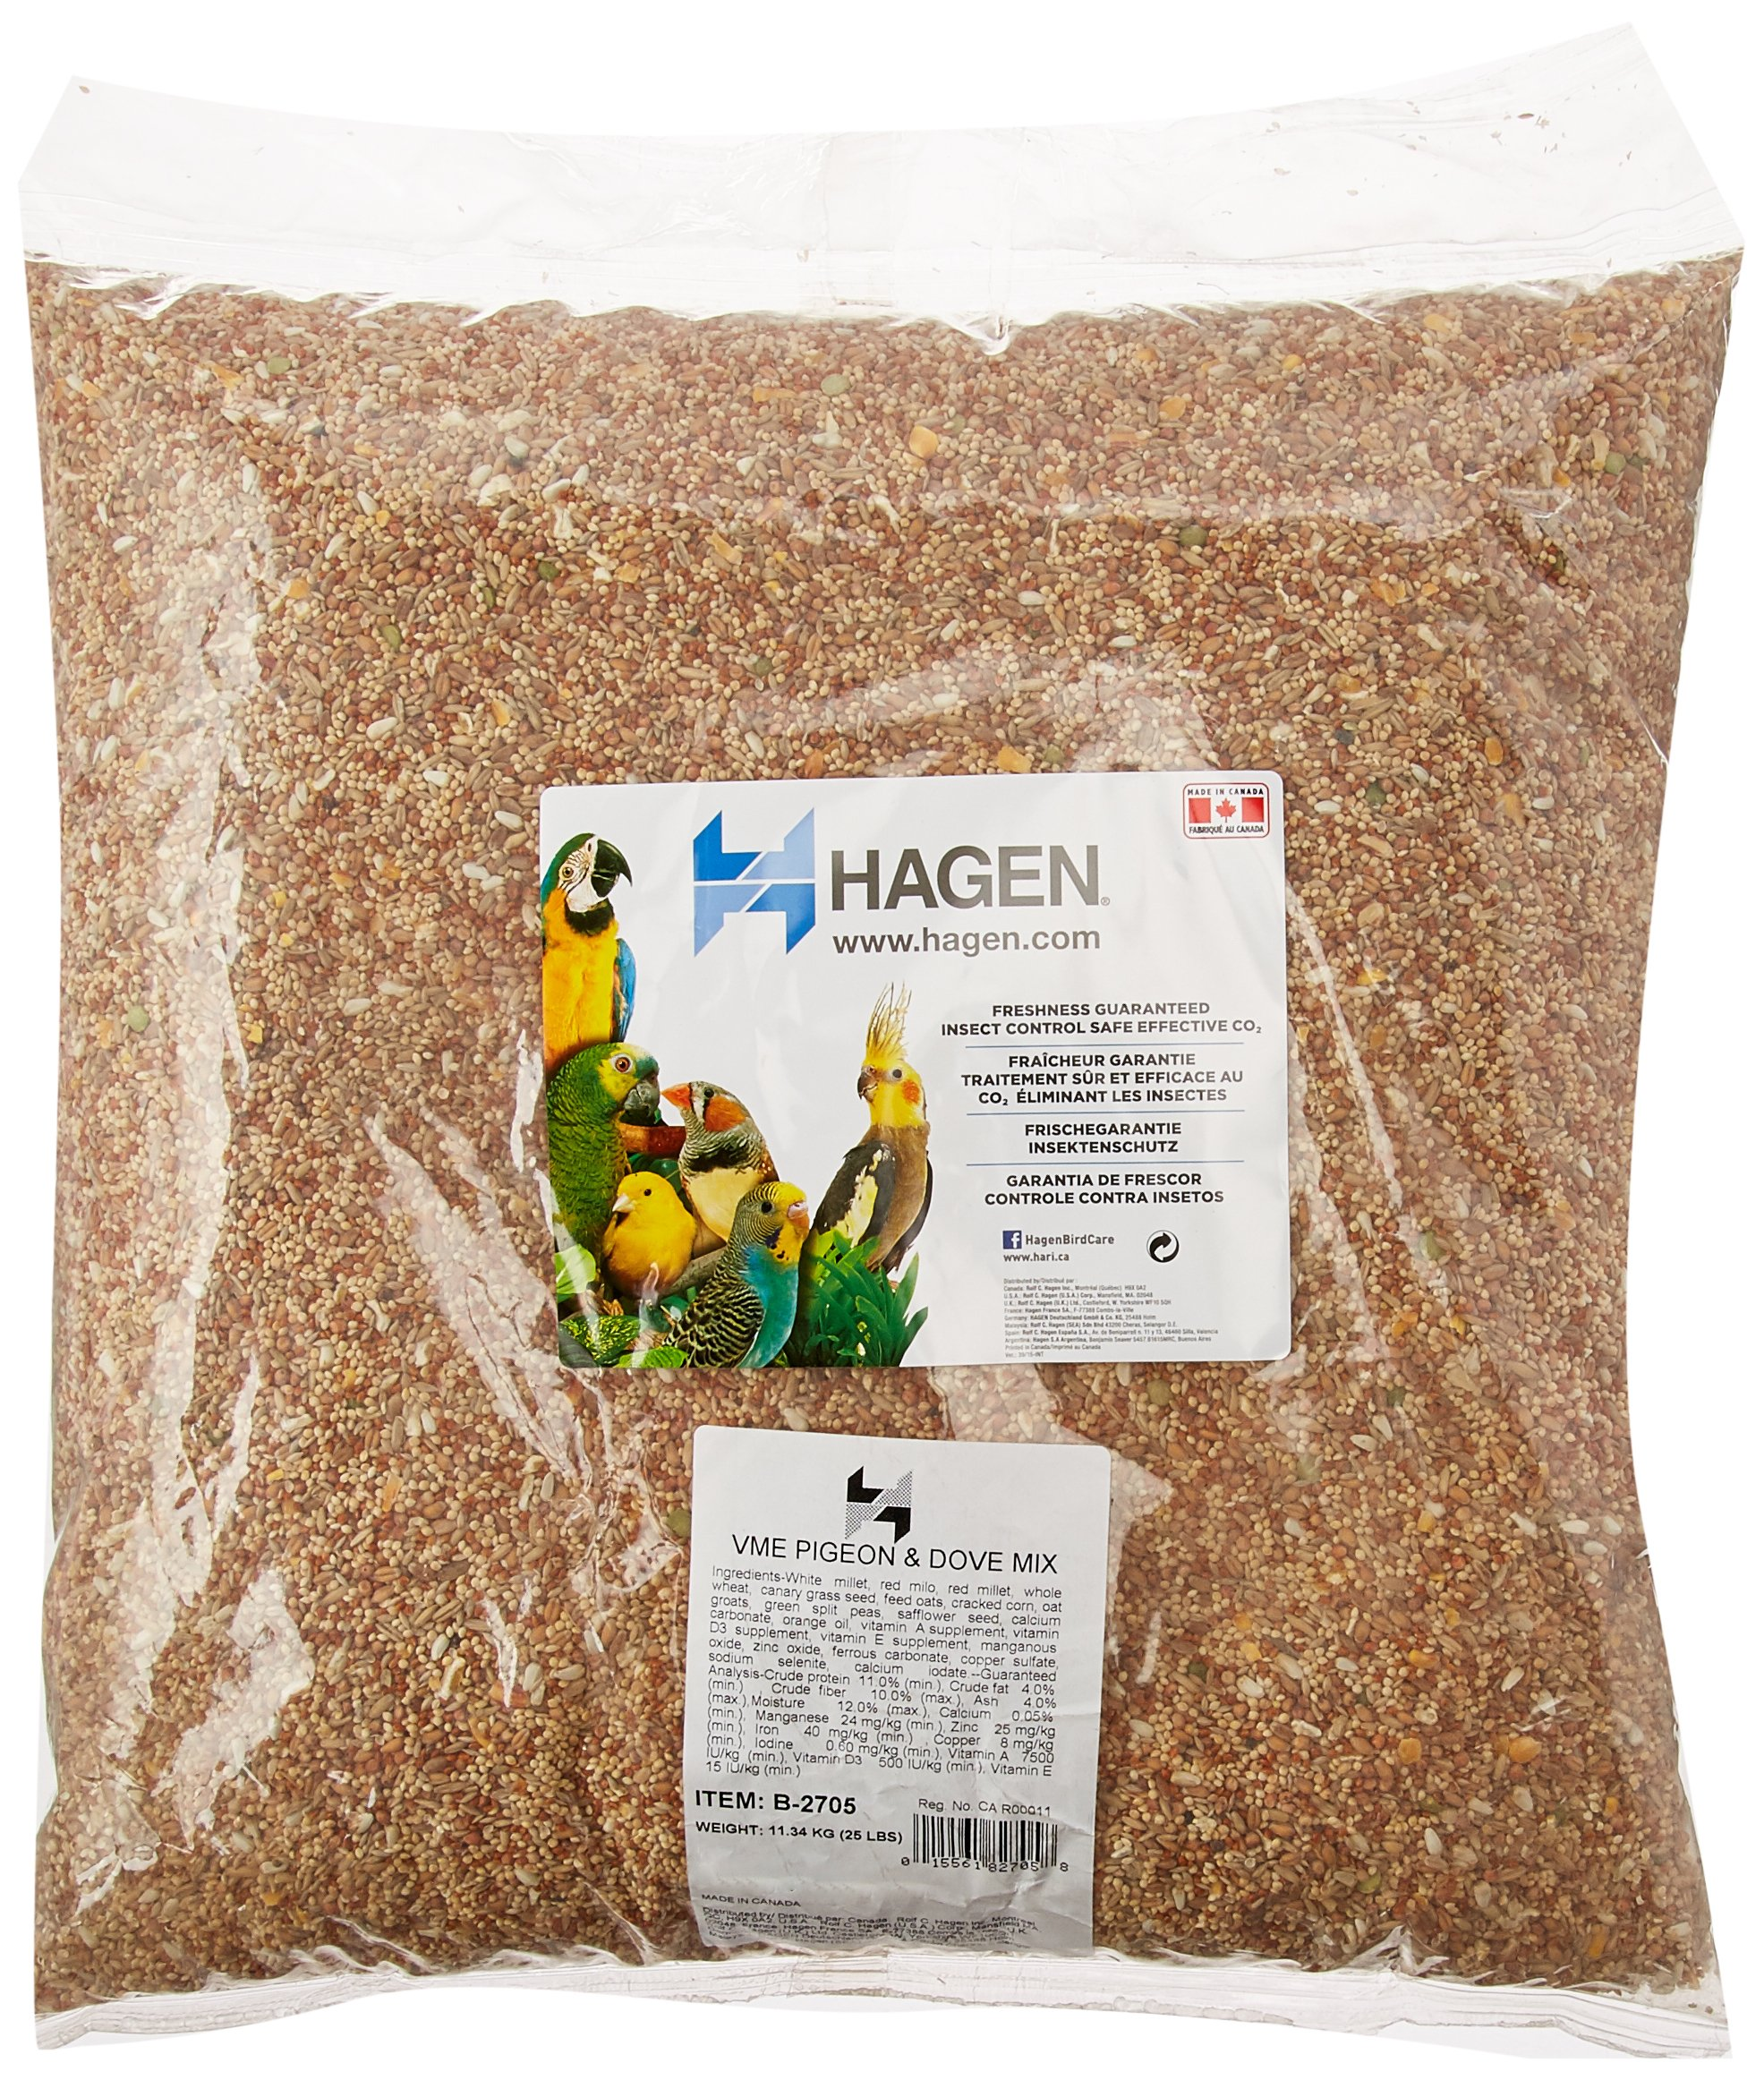 Hagen Pigeon And Dove Staple Vme Seed, 25-Pound by Hagen